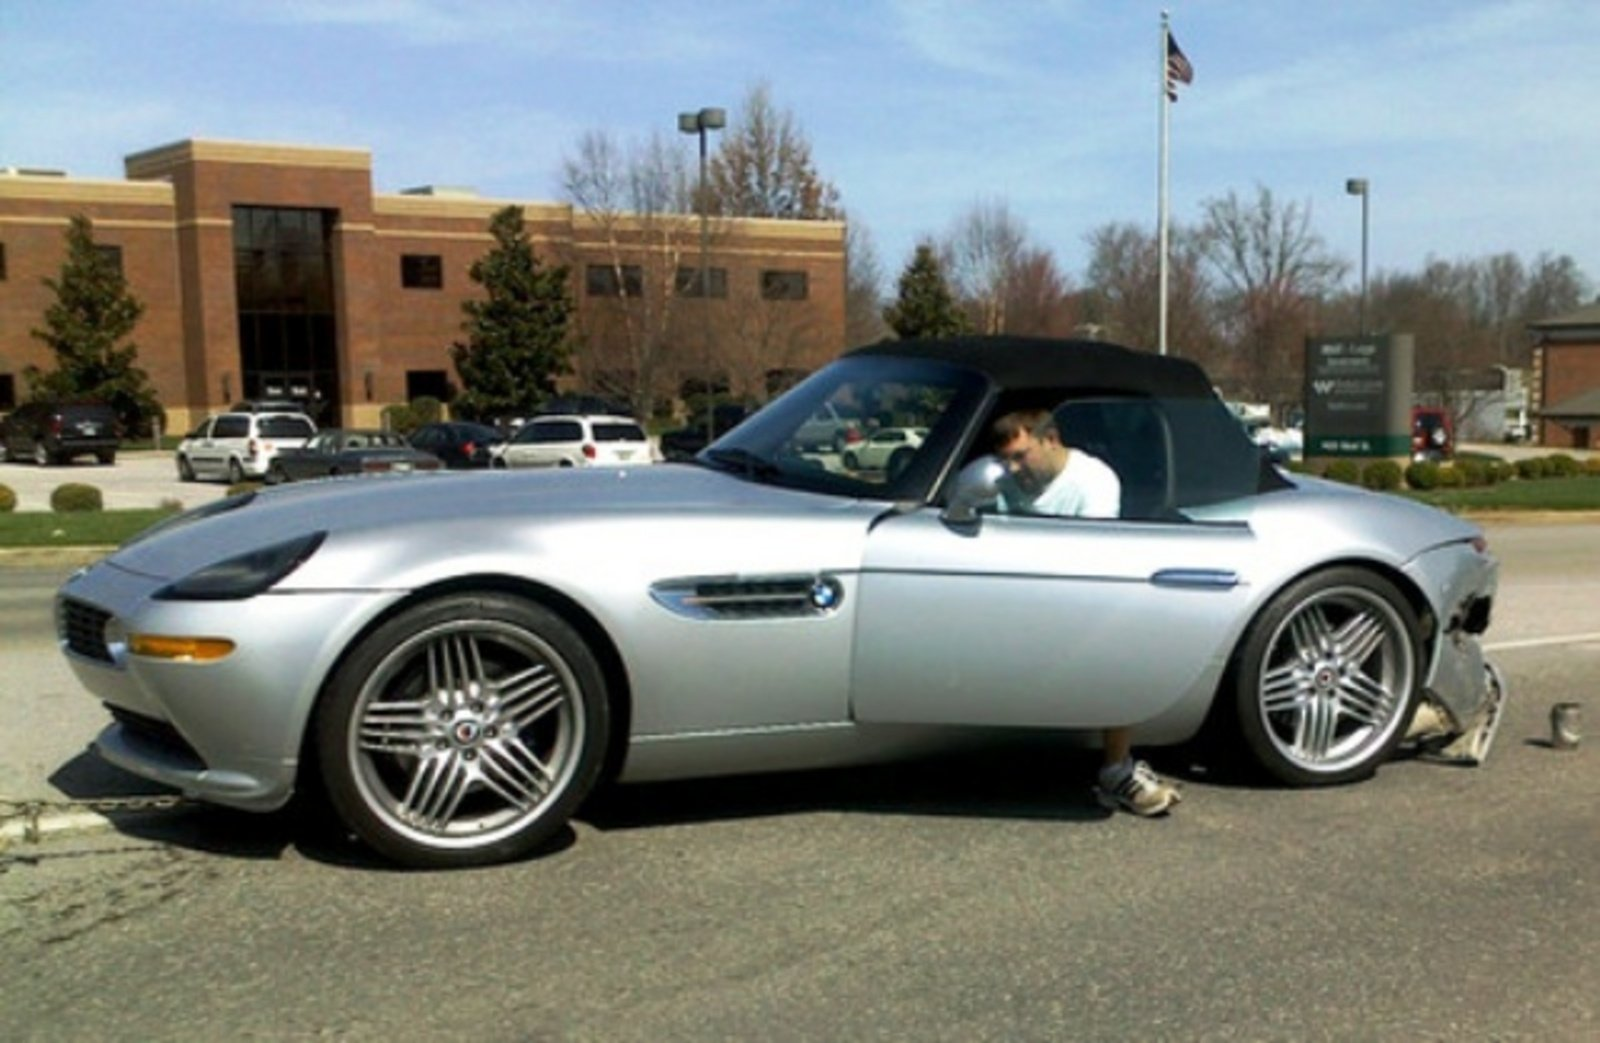 Alpina Tuned Bmw Z8 Gets Rear Ended By A Dodge Stratus